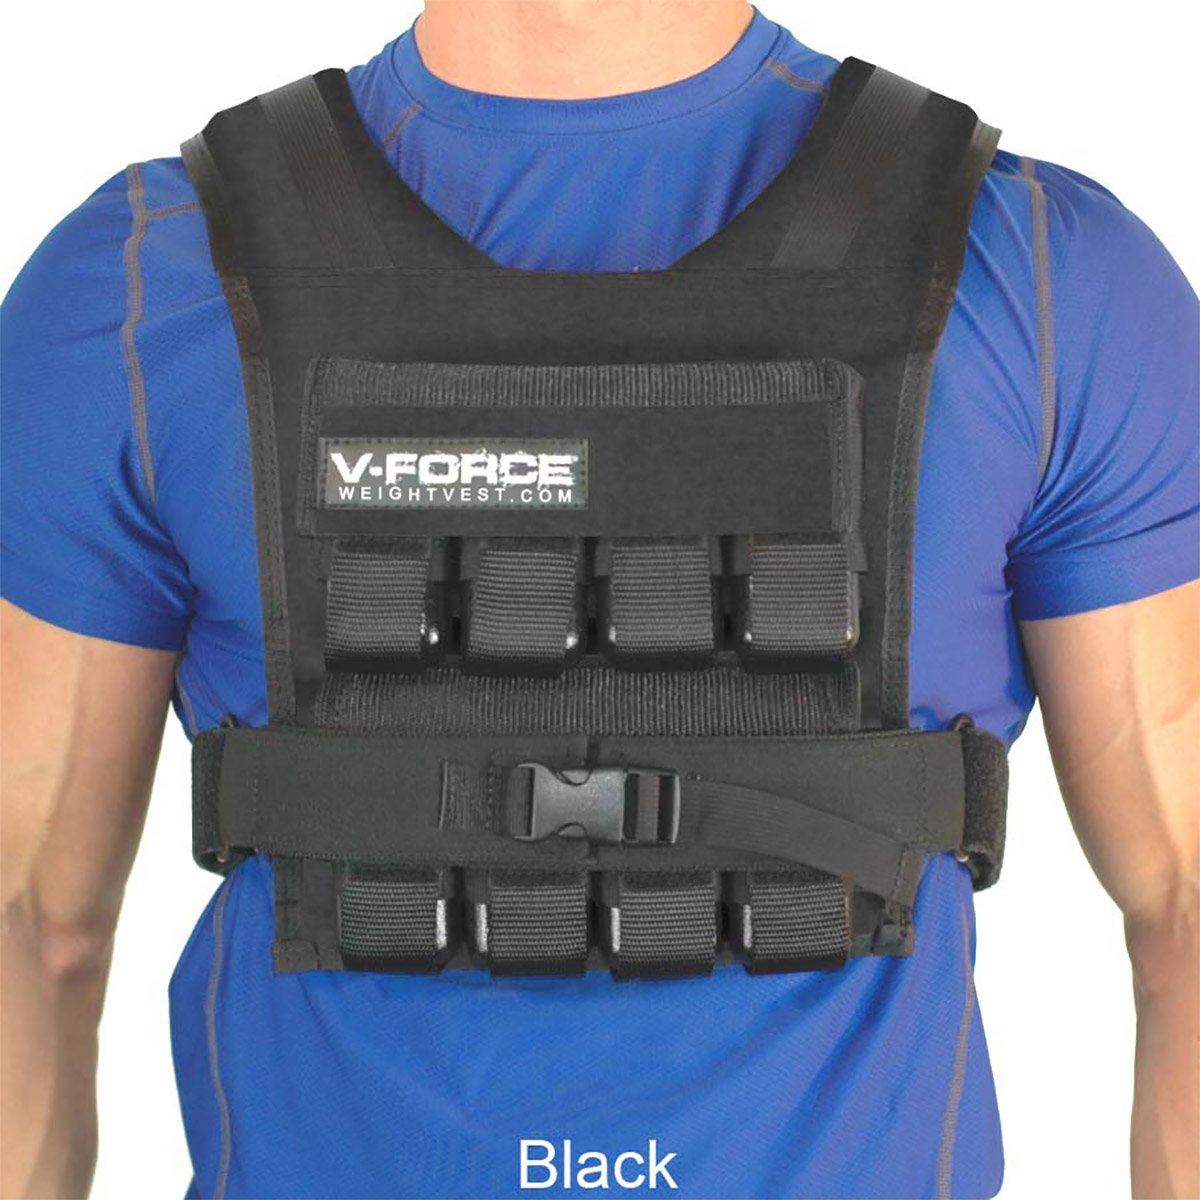 40 lb. V-FORCE (Black, 3-1/4'' narrow shoulders) by VForce